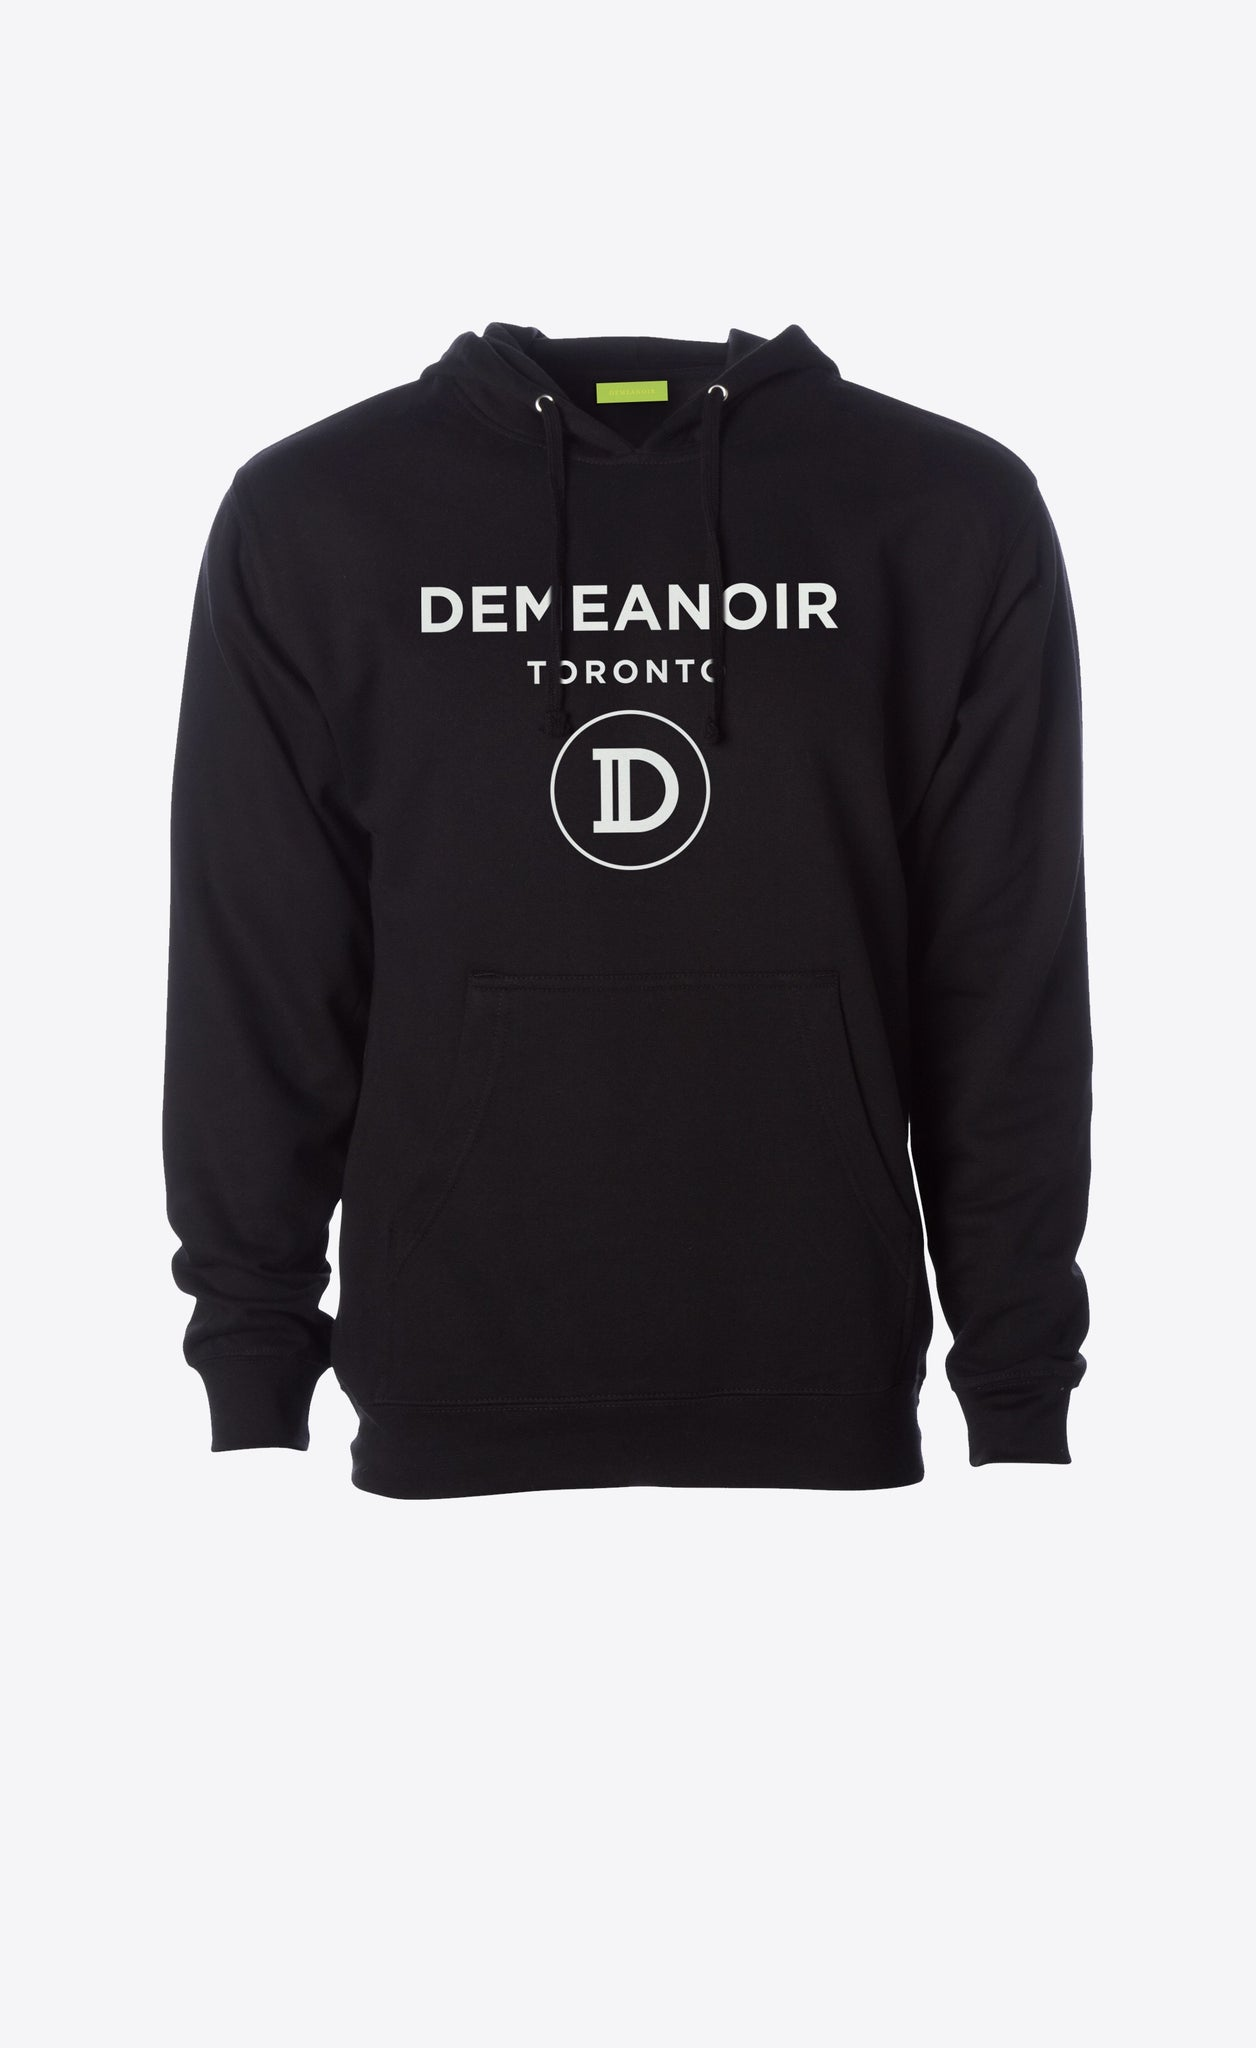 DEMEANOIR - THE SPOT BOUTIQUE